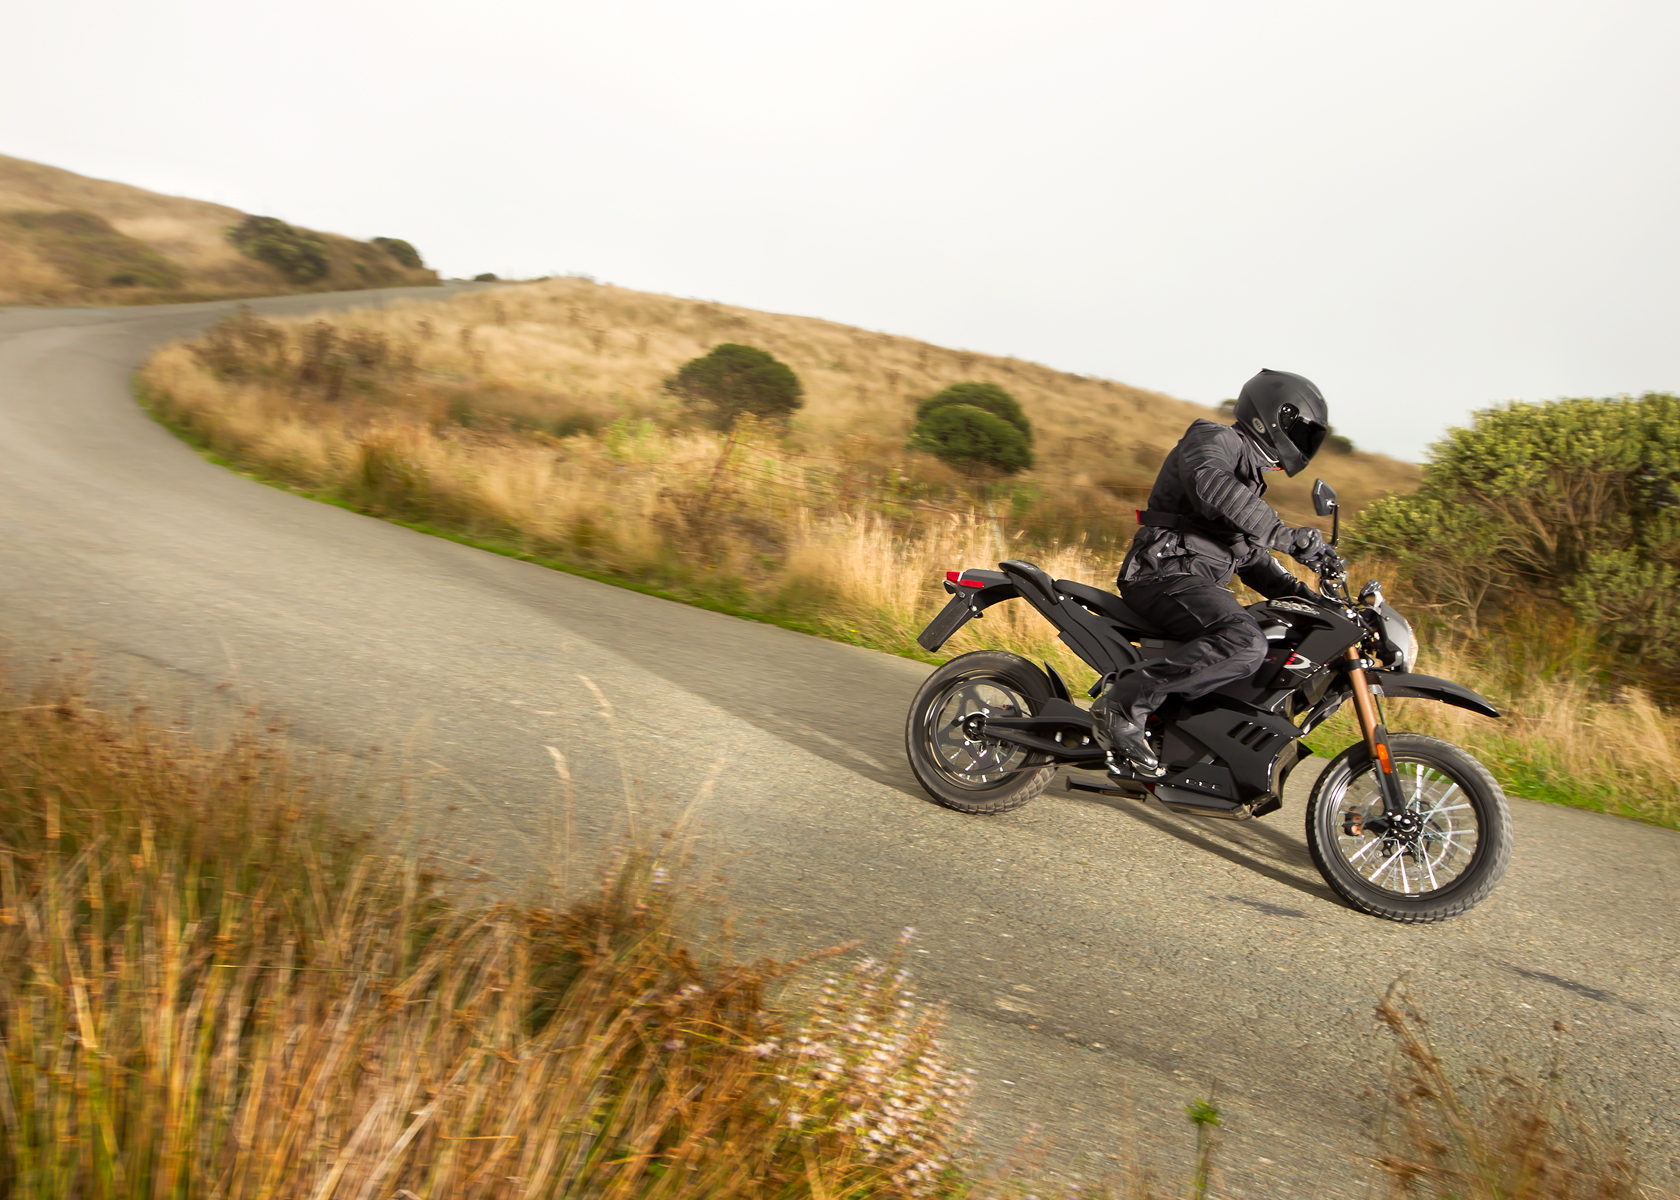 2012 Zero DS Electric Motorcycle: Downhill, Lean Left